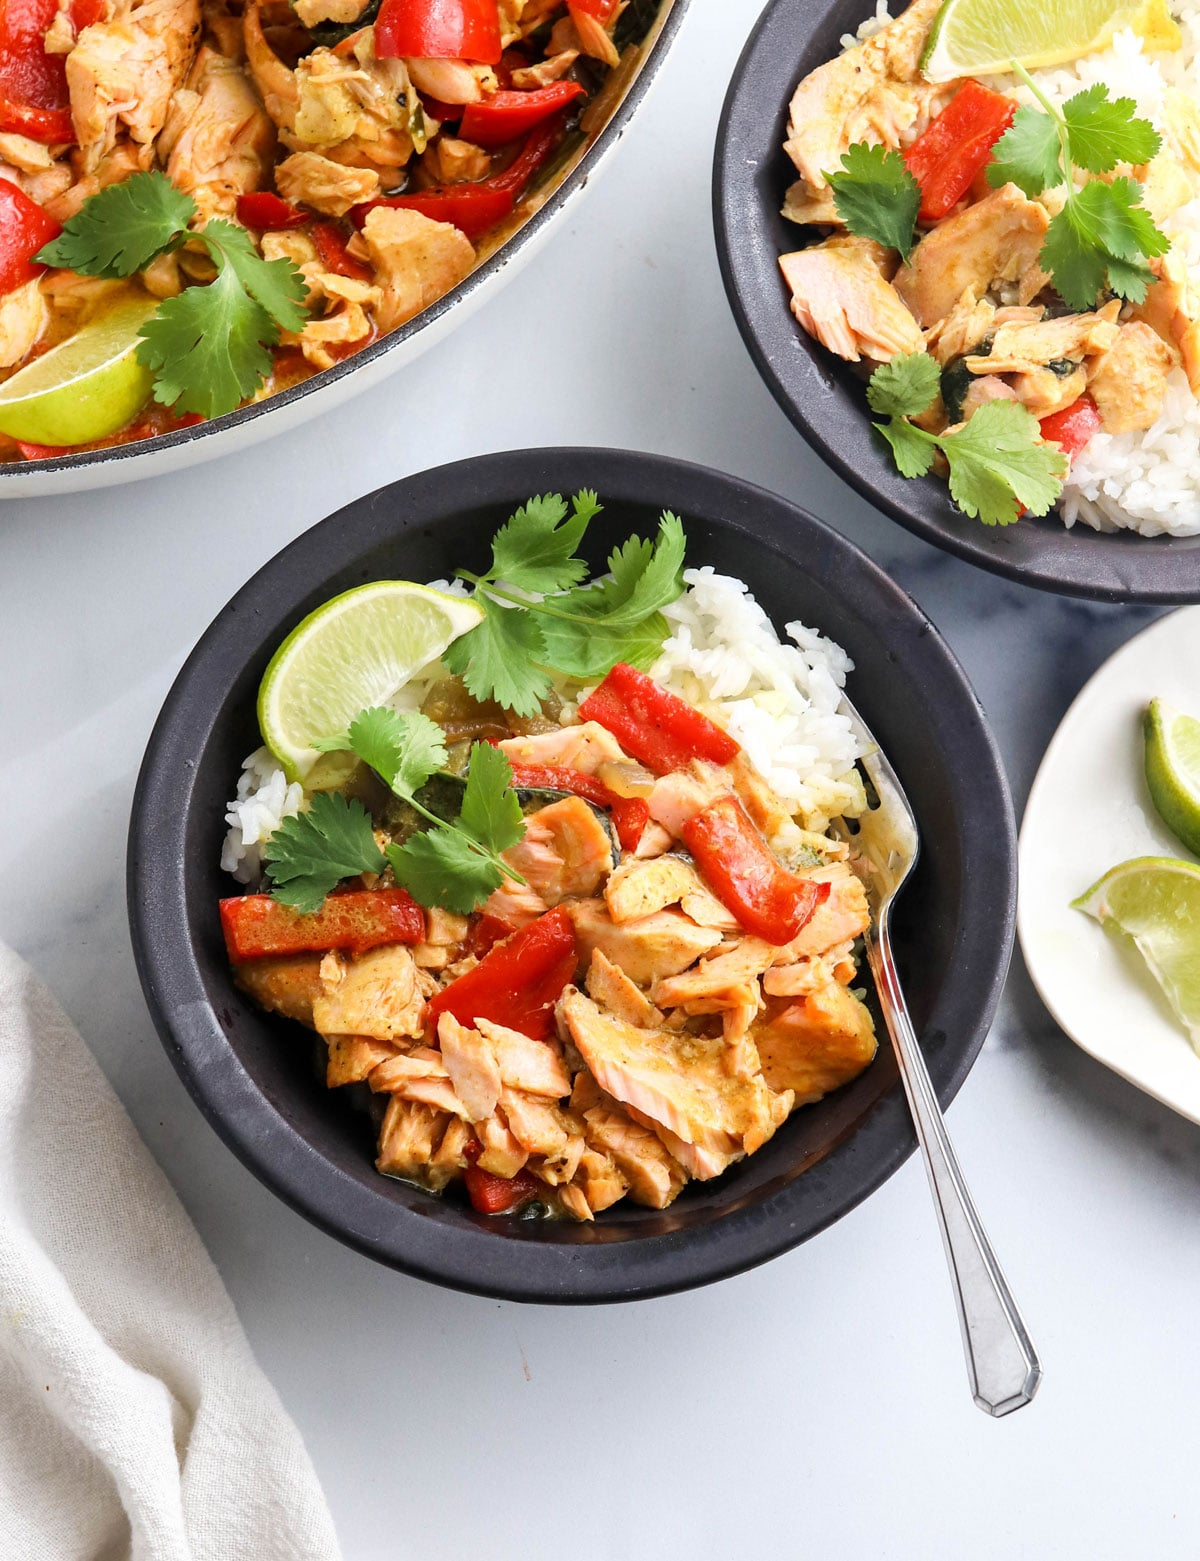 salmon curry over rice in black bowl